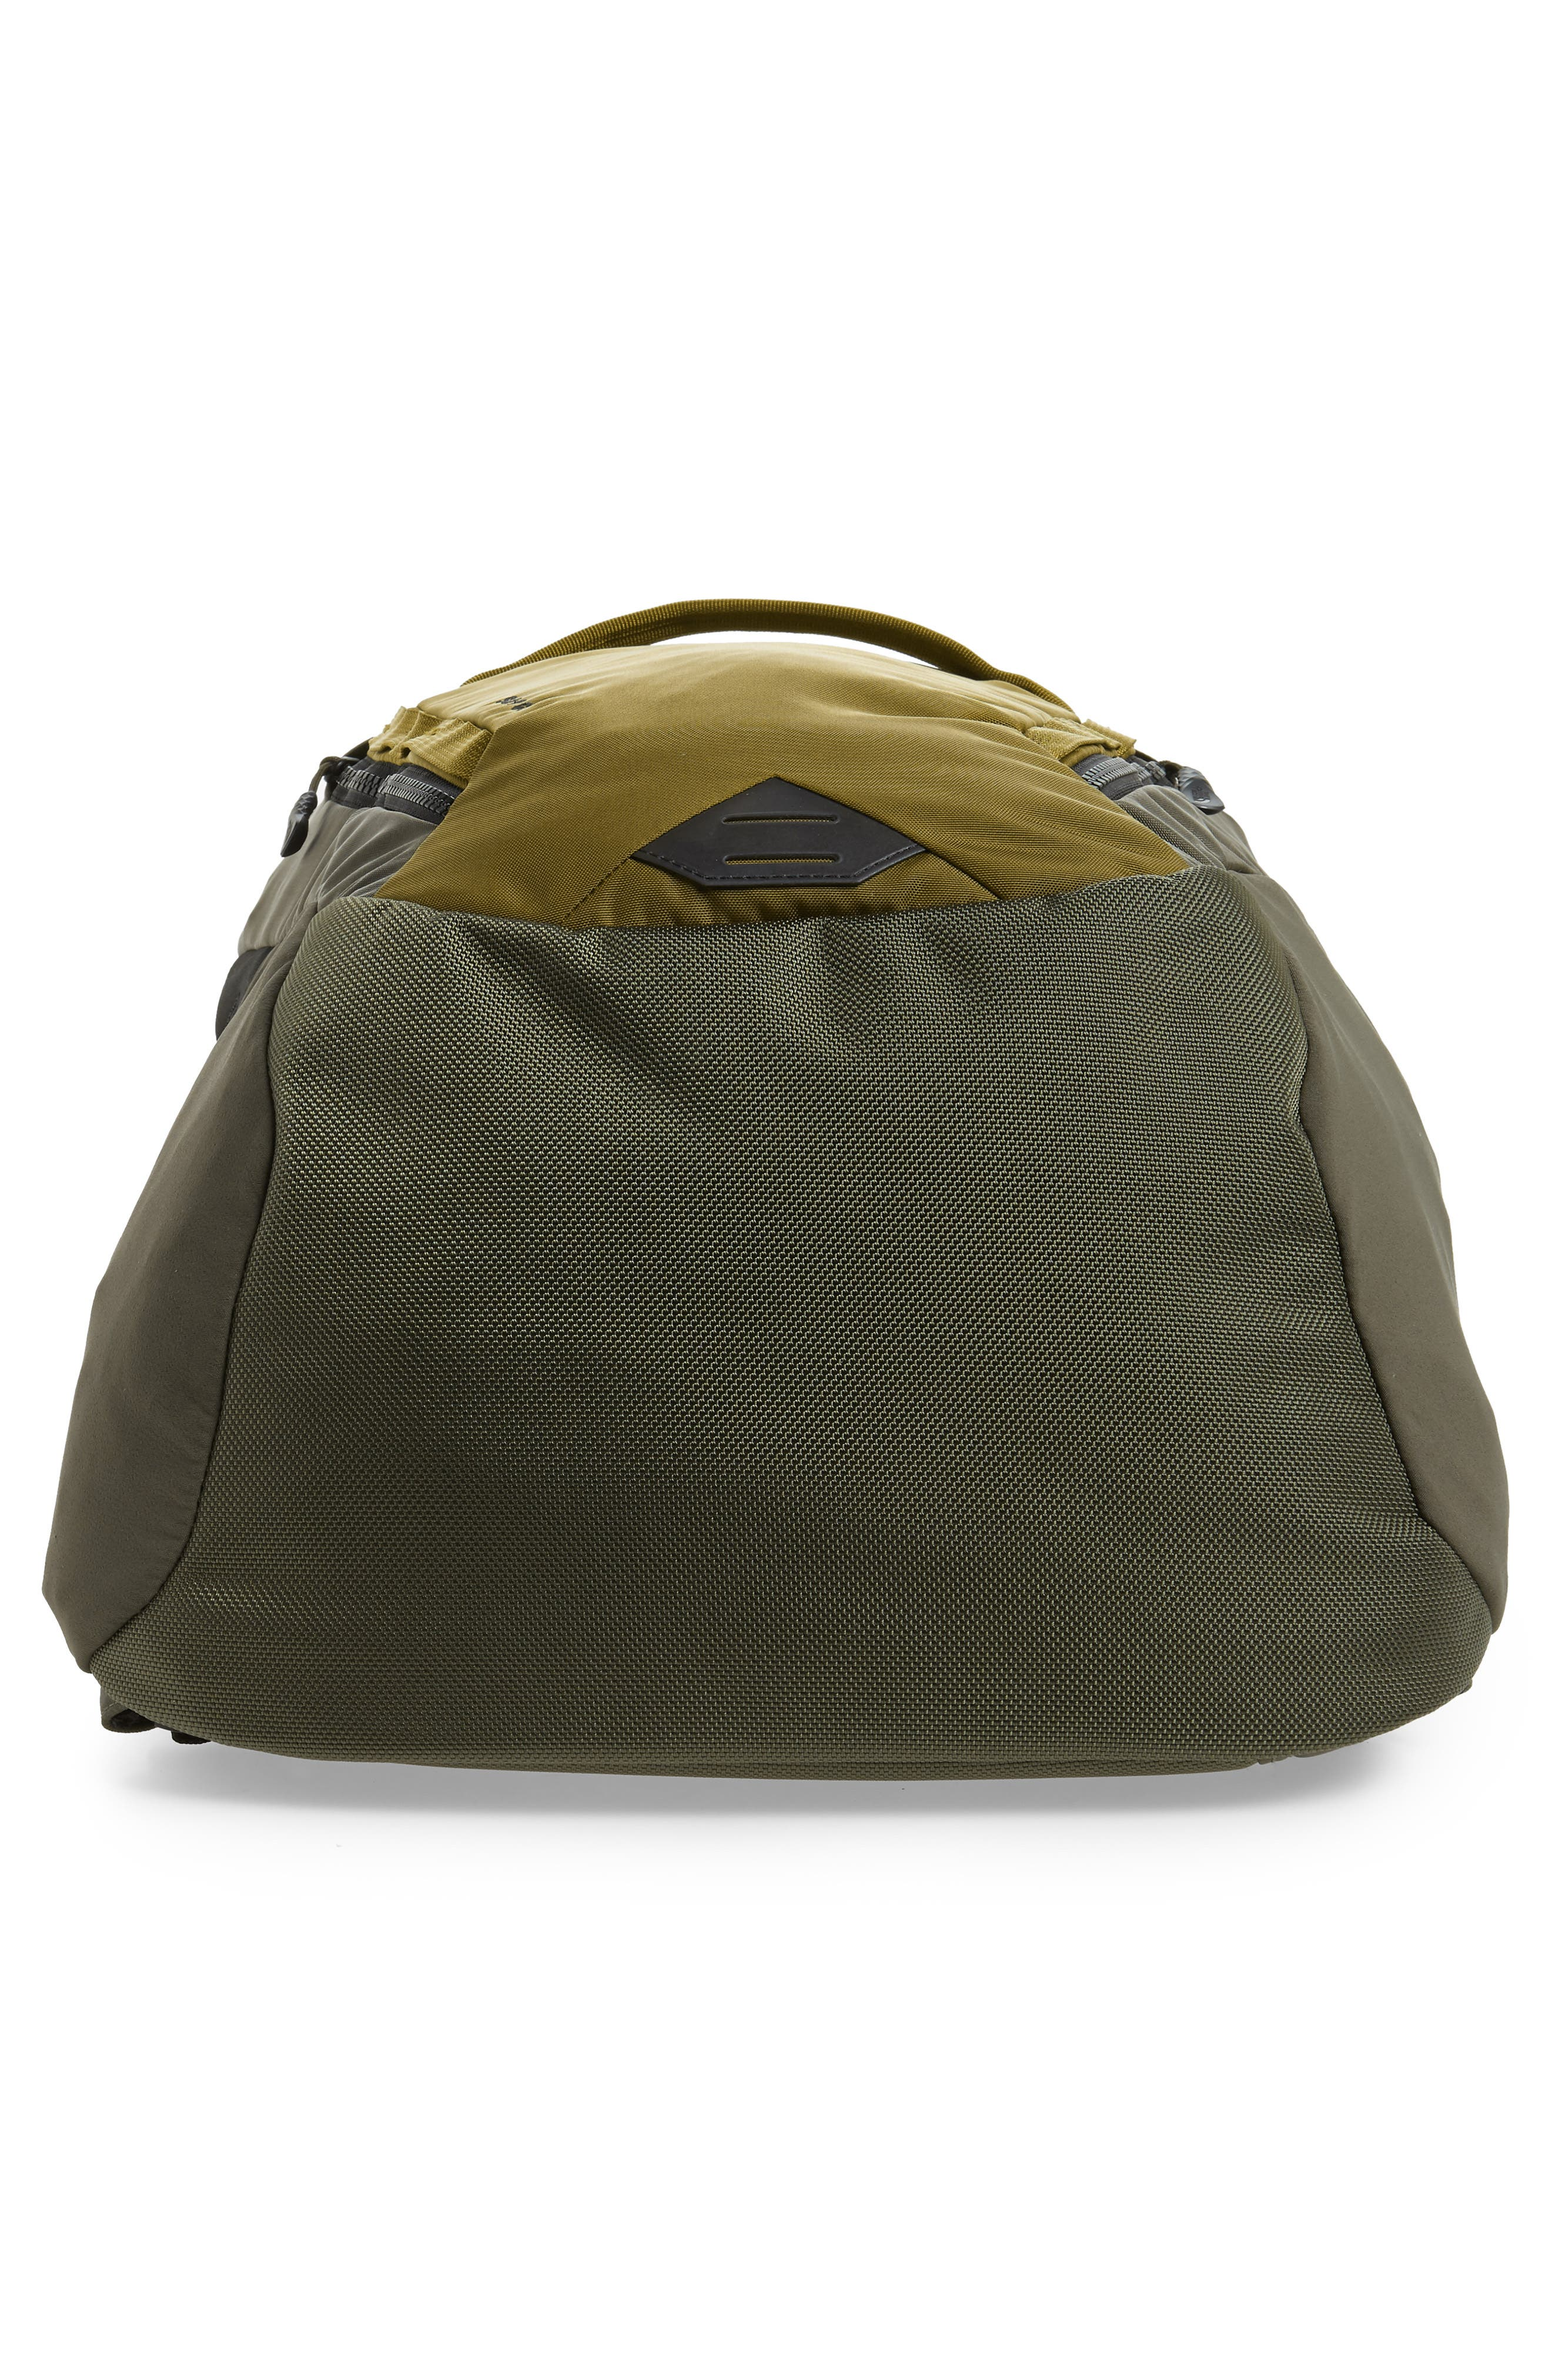 Surge Backpack,                             Alternate thumbnail 6, color,                             FIR GREEN/ NEW TAUPE GREEN